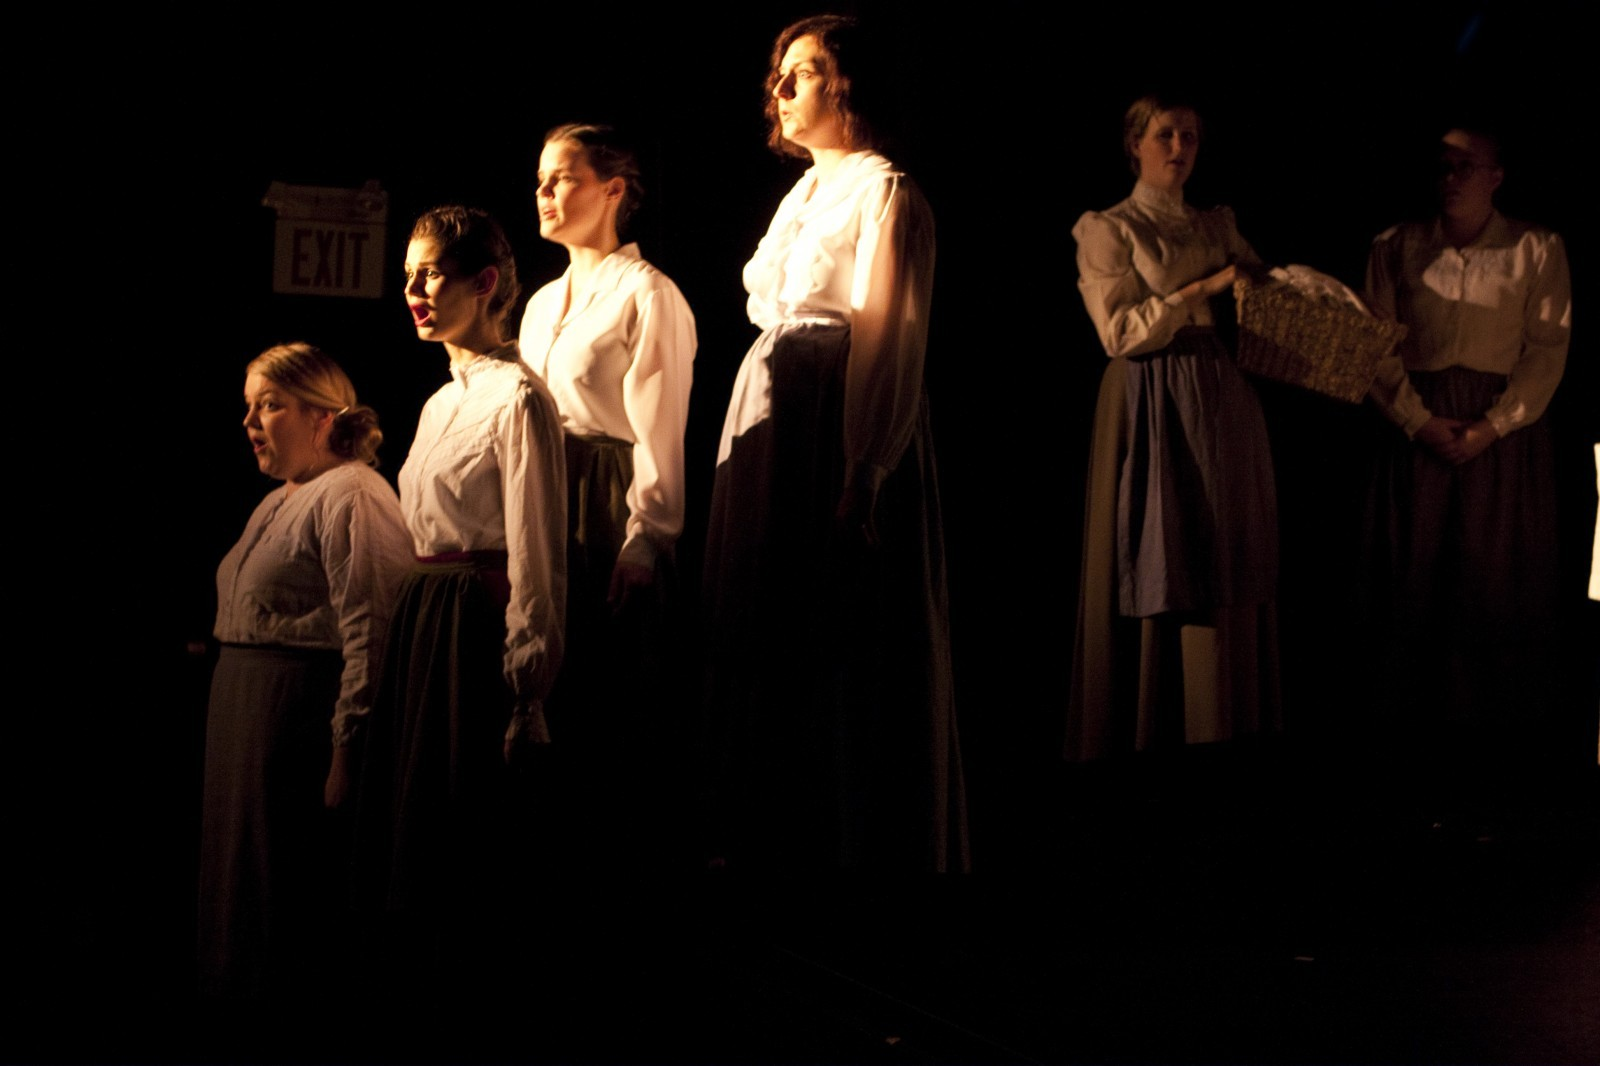 Xara Choral Theatre is one of the many groups recommended for funding - XARA.CA